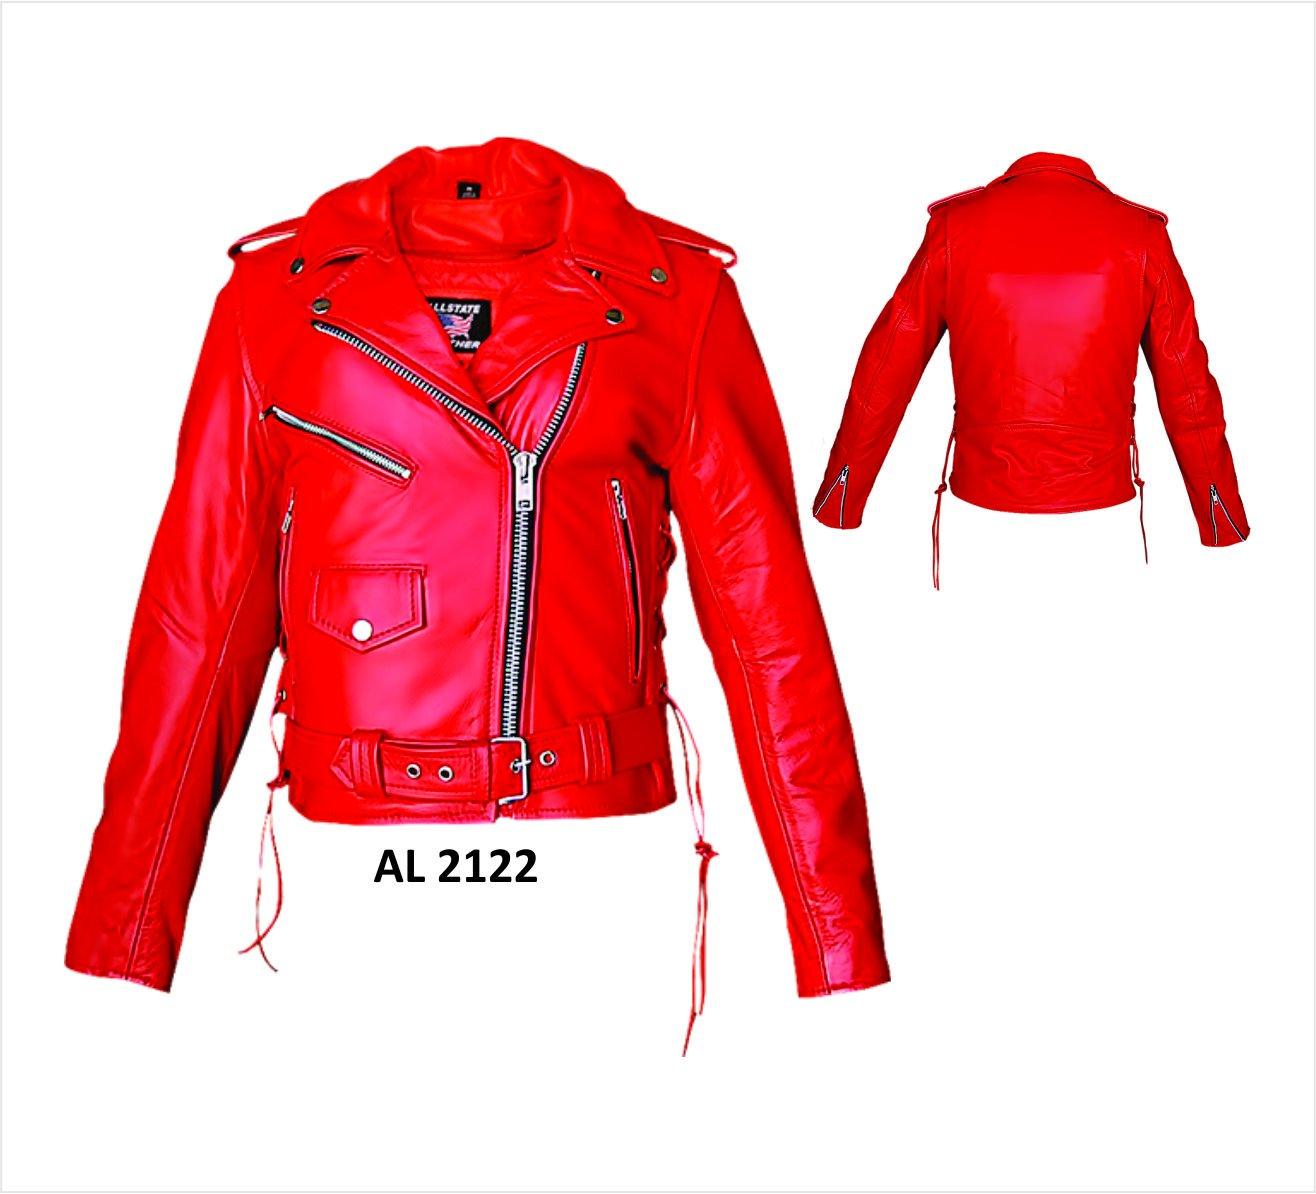 Ladies Red Motorcycle Jacket with Zipout Liner and Side Laces - 3X - AL2122